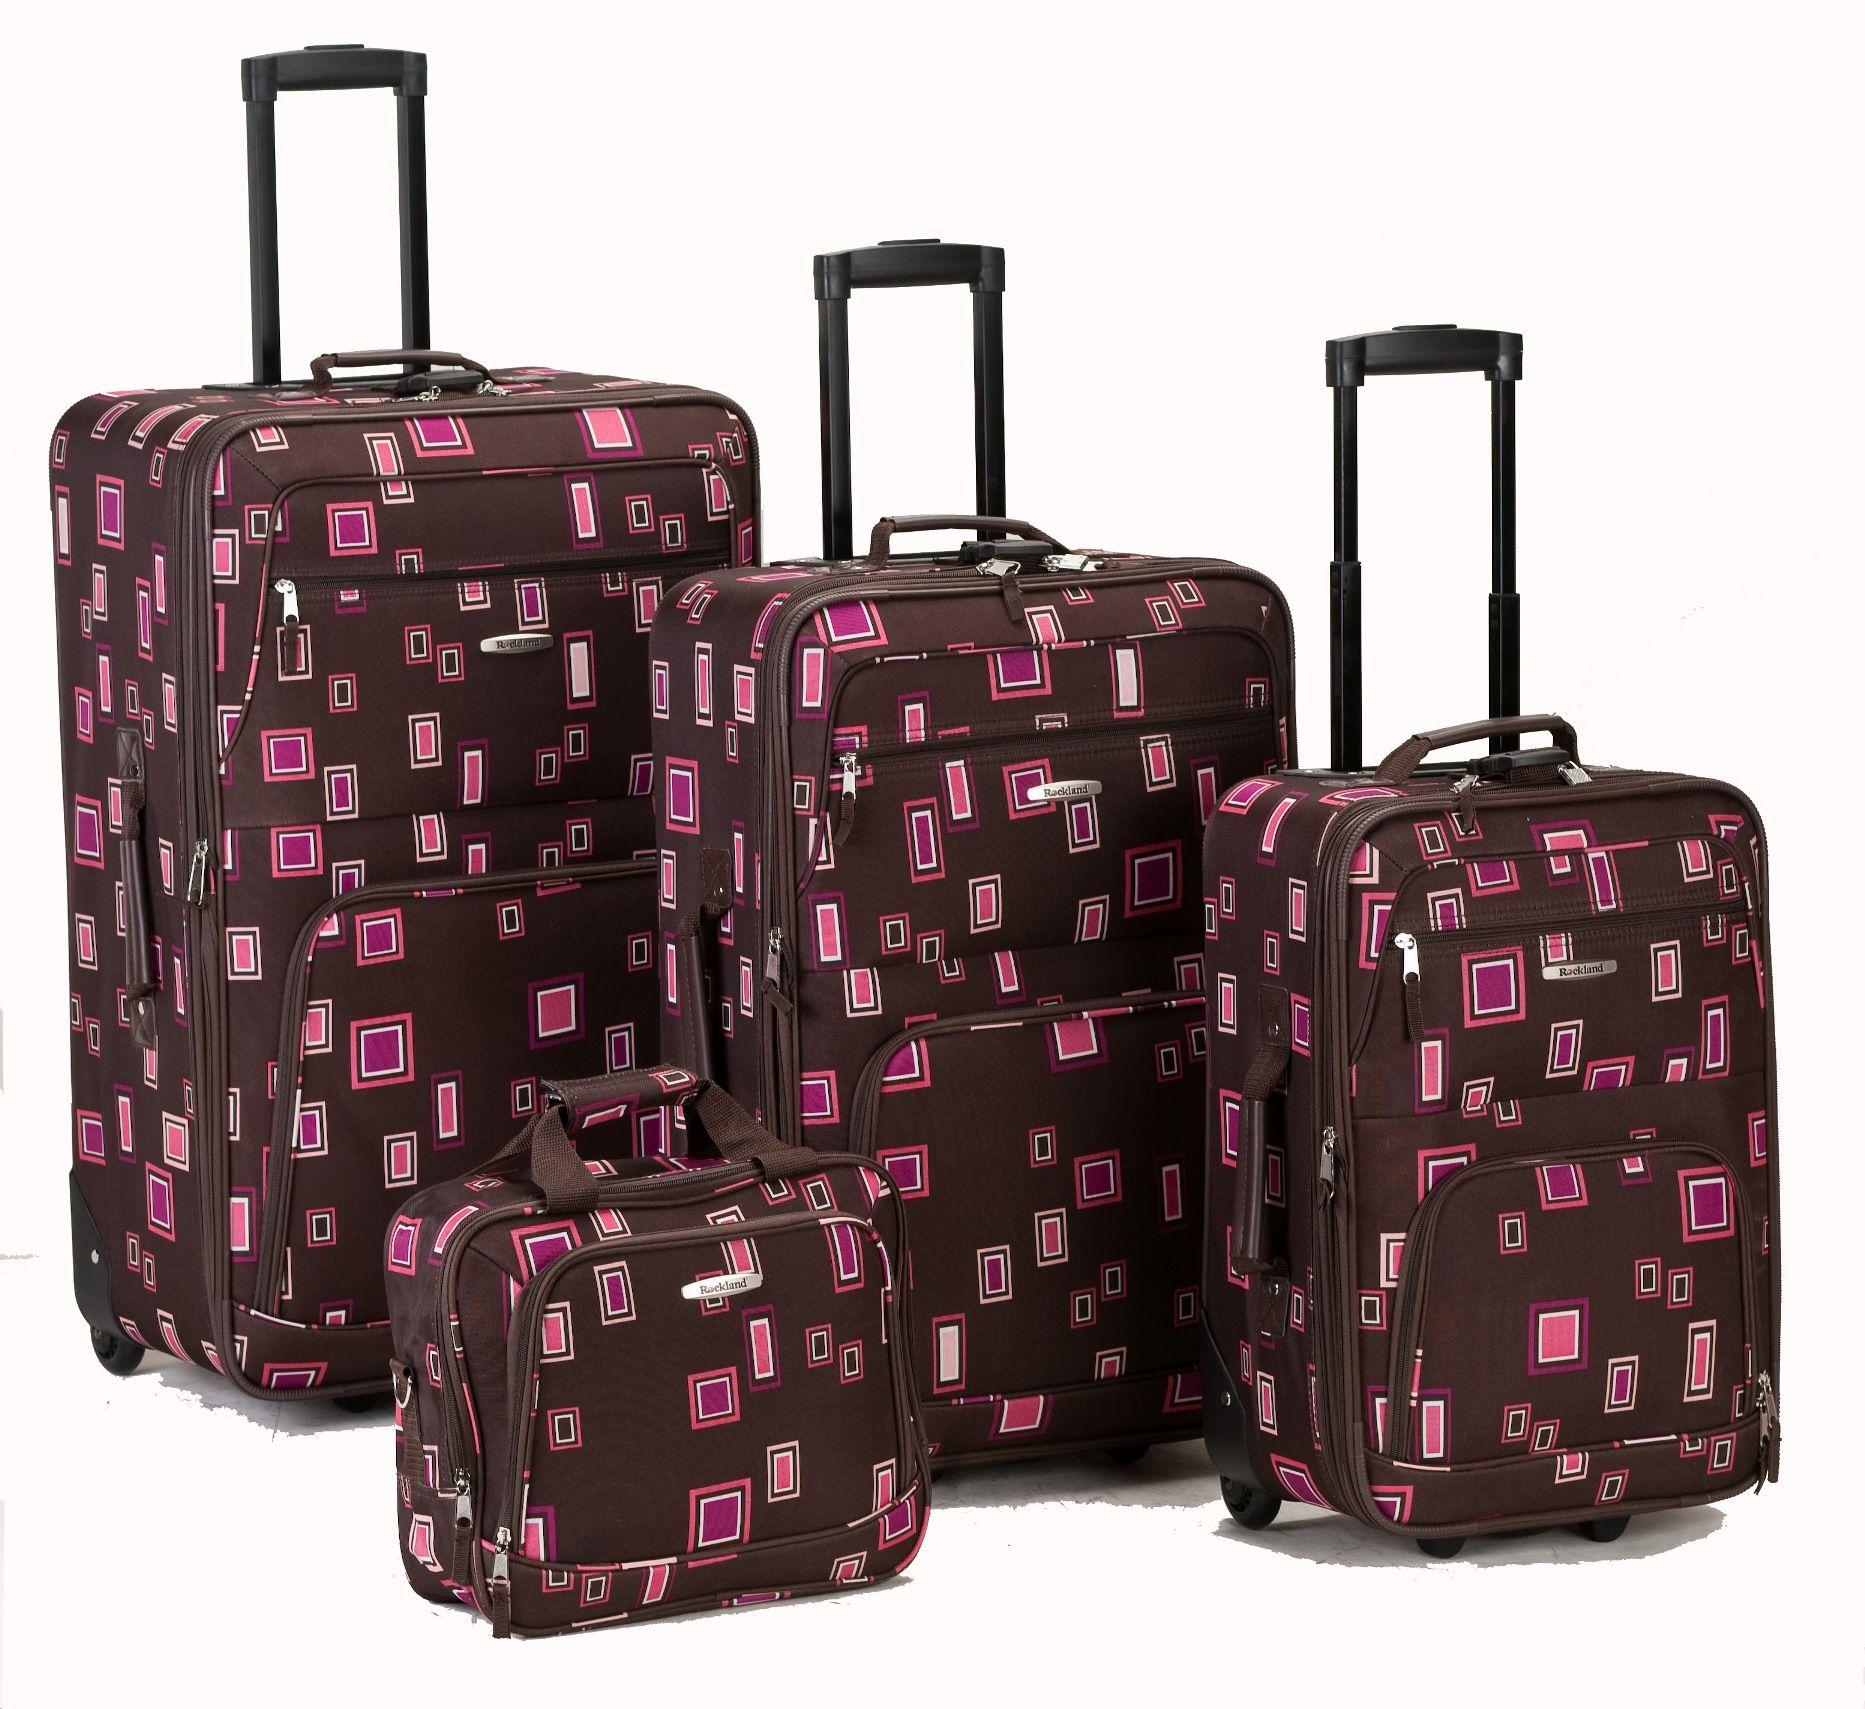 FOX LUGGAGE Rockland Fox Luggage Chocolate 4 Pc Luggage Set